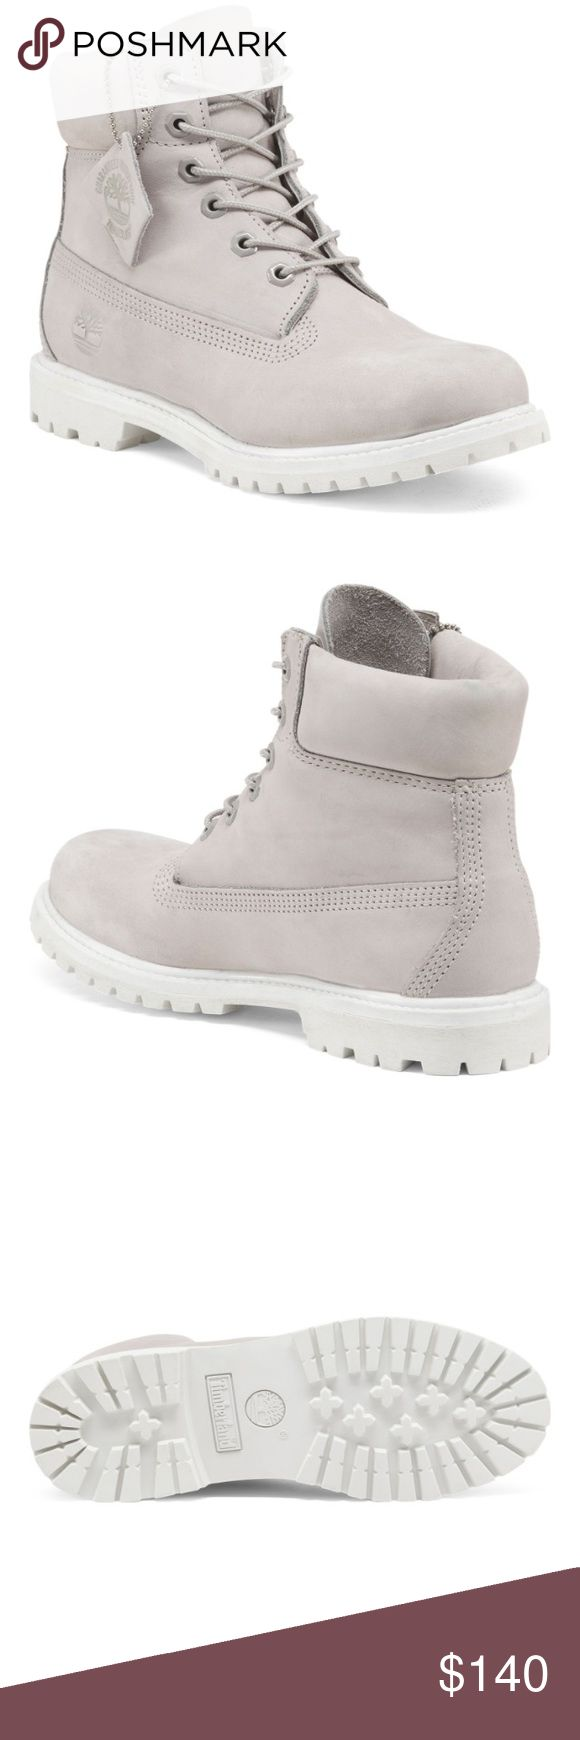 ✨COMING SOON✨ Brand new Timberlands! Grey suede waterproof premium boots. WILL BE AVAILABLE TO SHIP TO YOU ON MONDAY🎉 BUY NOW TO ENSURE THEY'RE YOURS❗️😌 Timberland Shoes Winter & Rain Boots